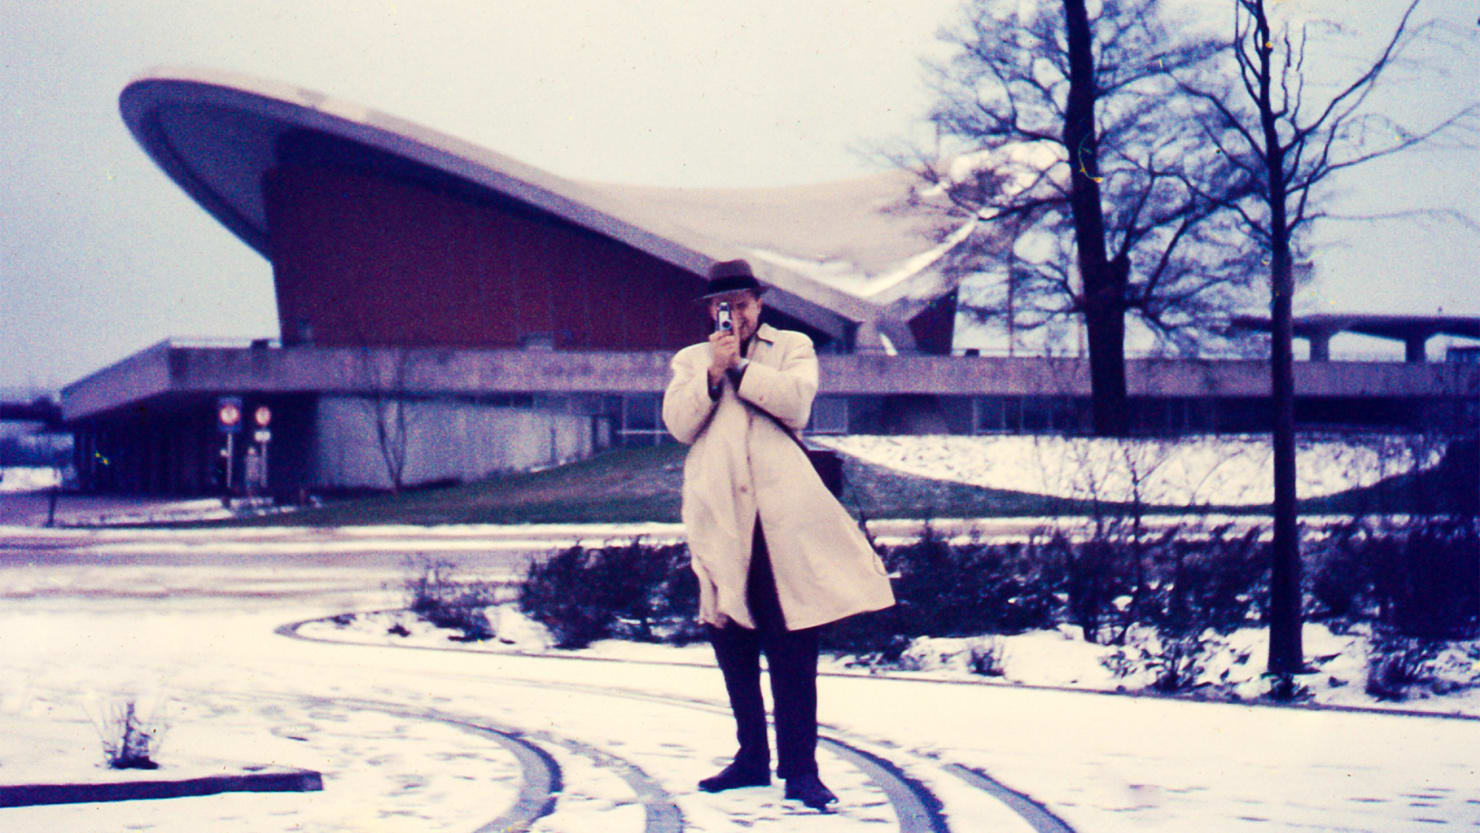 My Father Was a Spy Who Helped Keep the Cold War From Heating Up